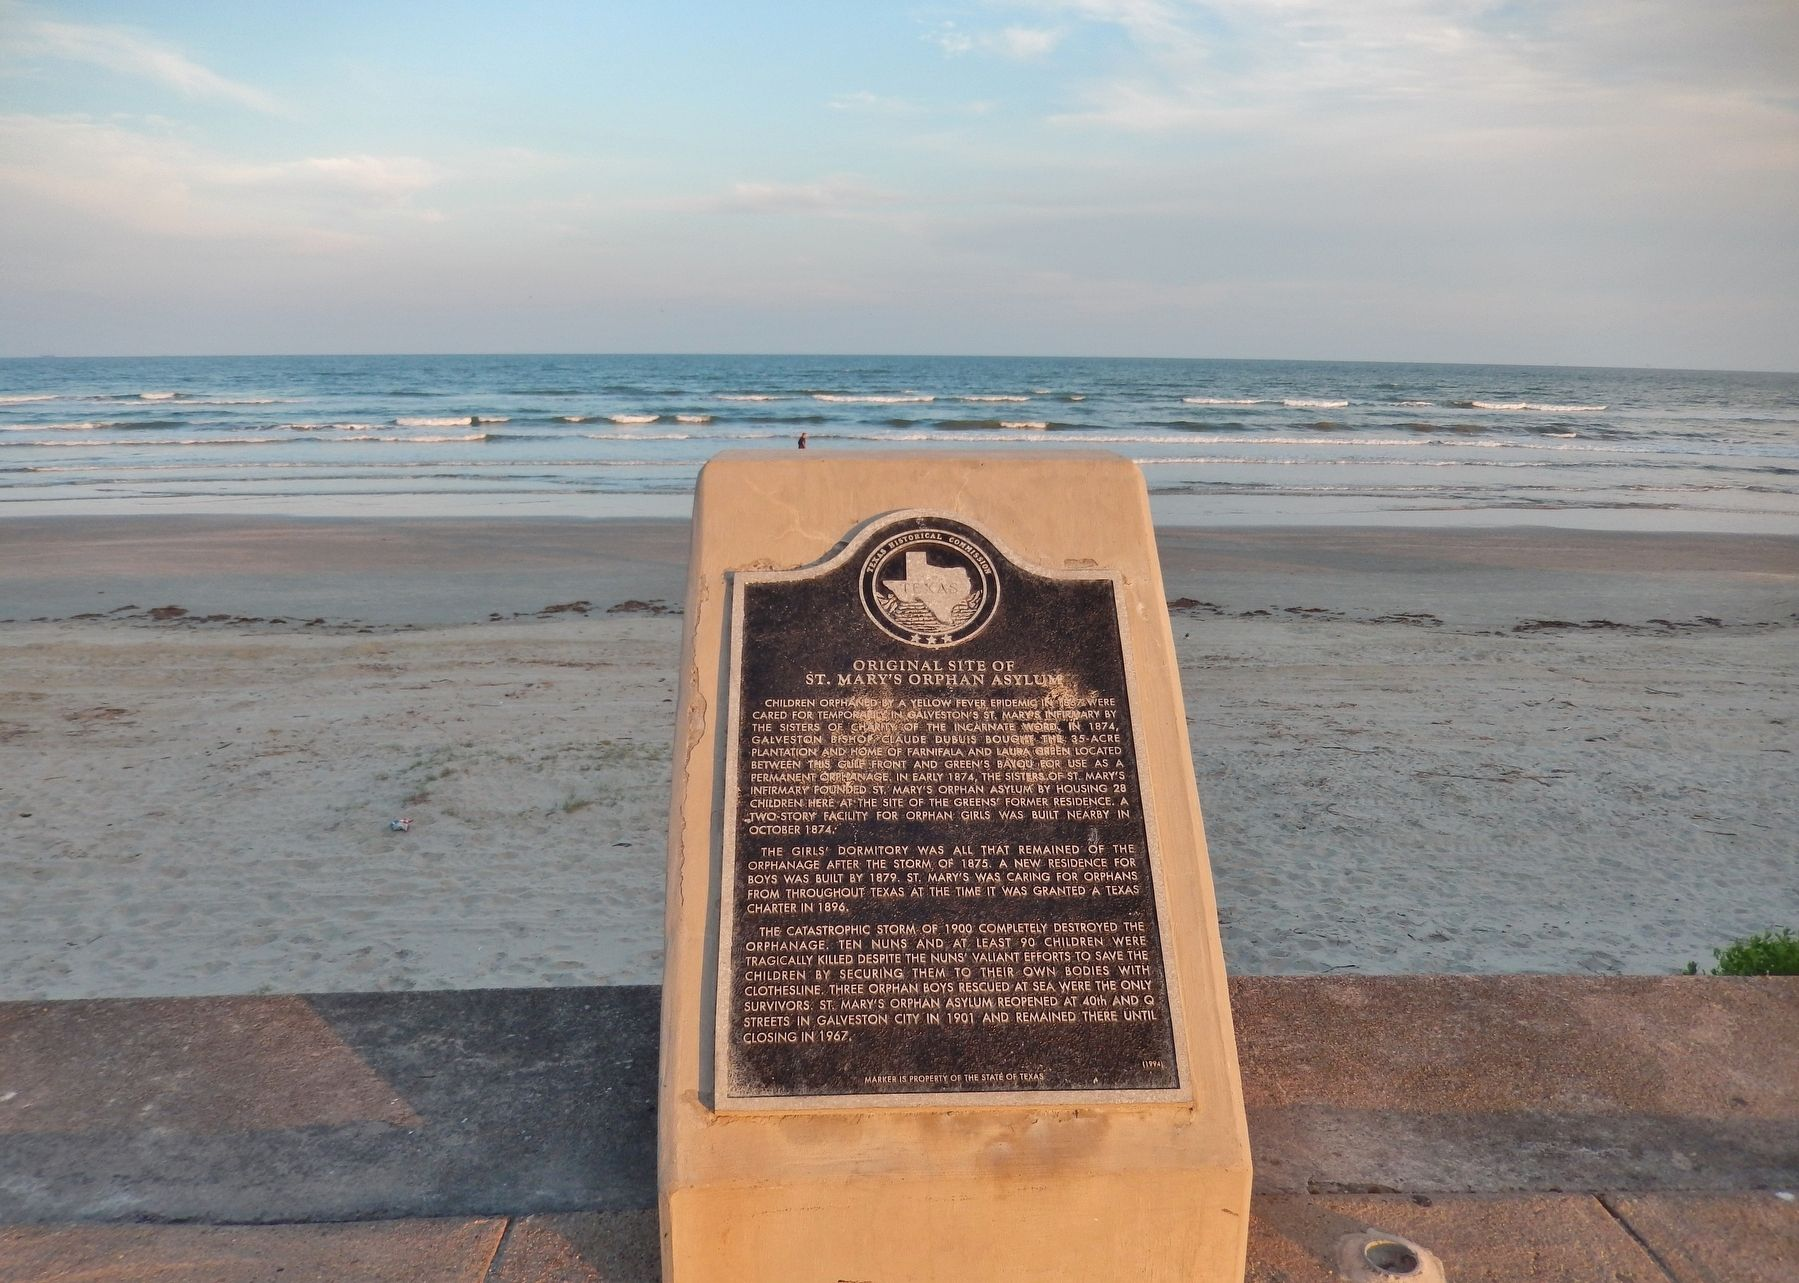 Original Site of St. Mary&#39;s Orphan Asylum Marker (<i>wide view; Galveston Beach in background</i>) image. Click for full size.